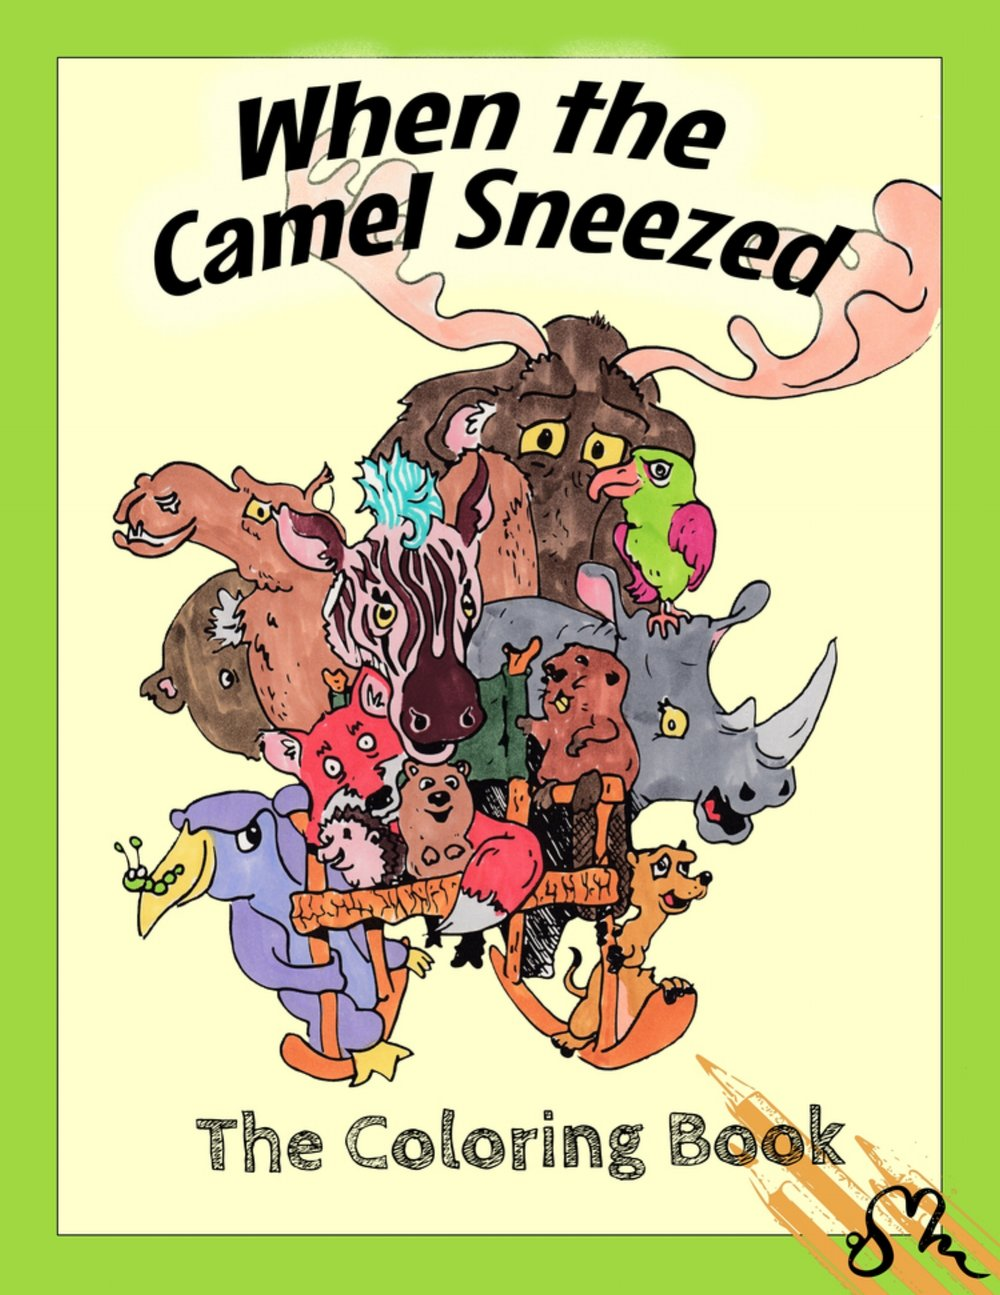 When-the-Camel-Sneezed_coloring-book.jpeg